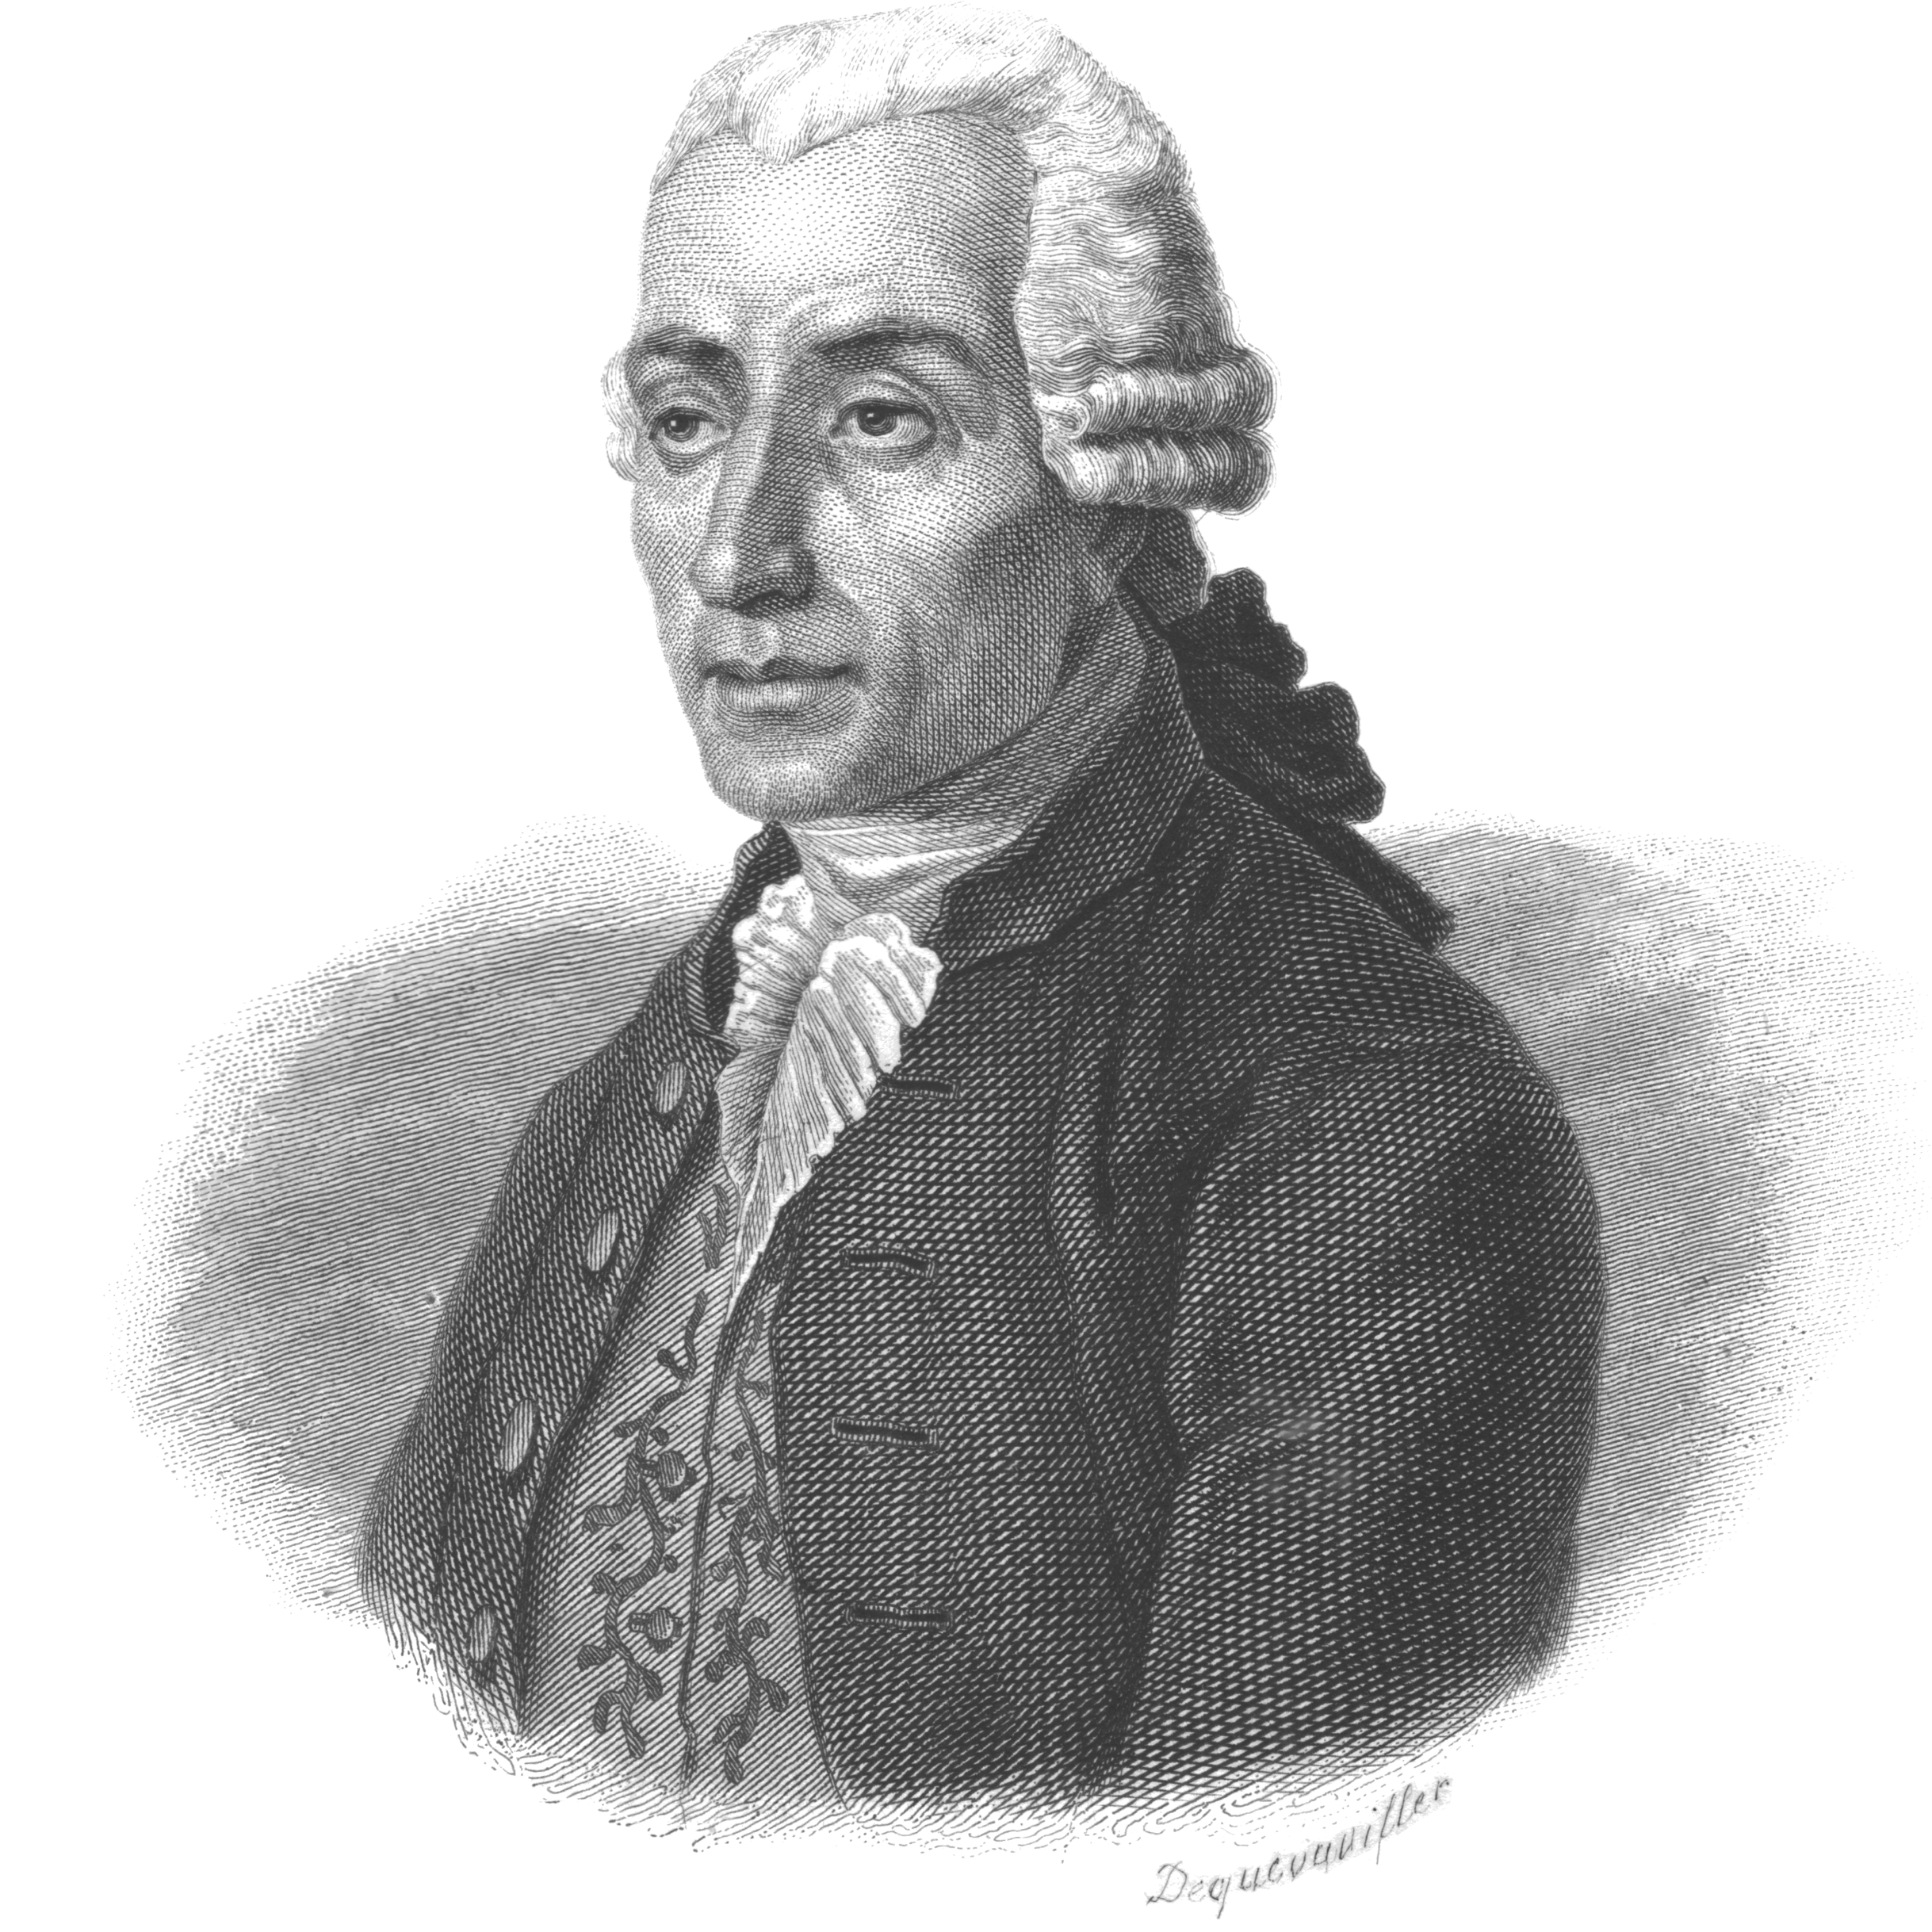 André-Jacob Roubo